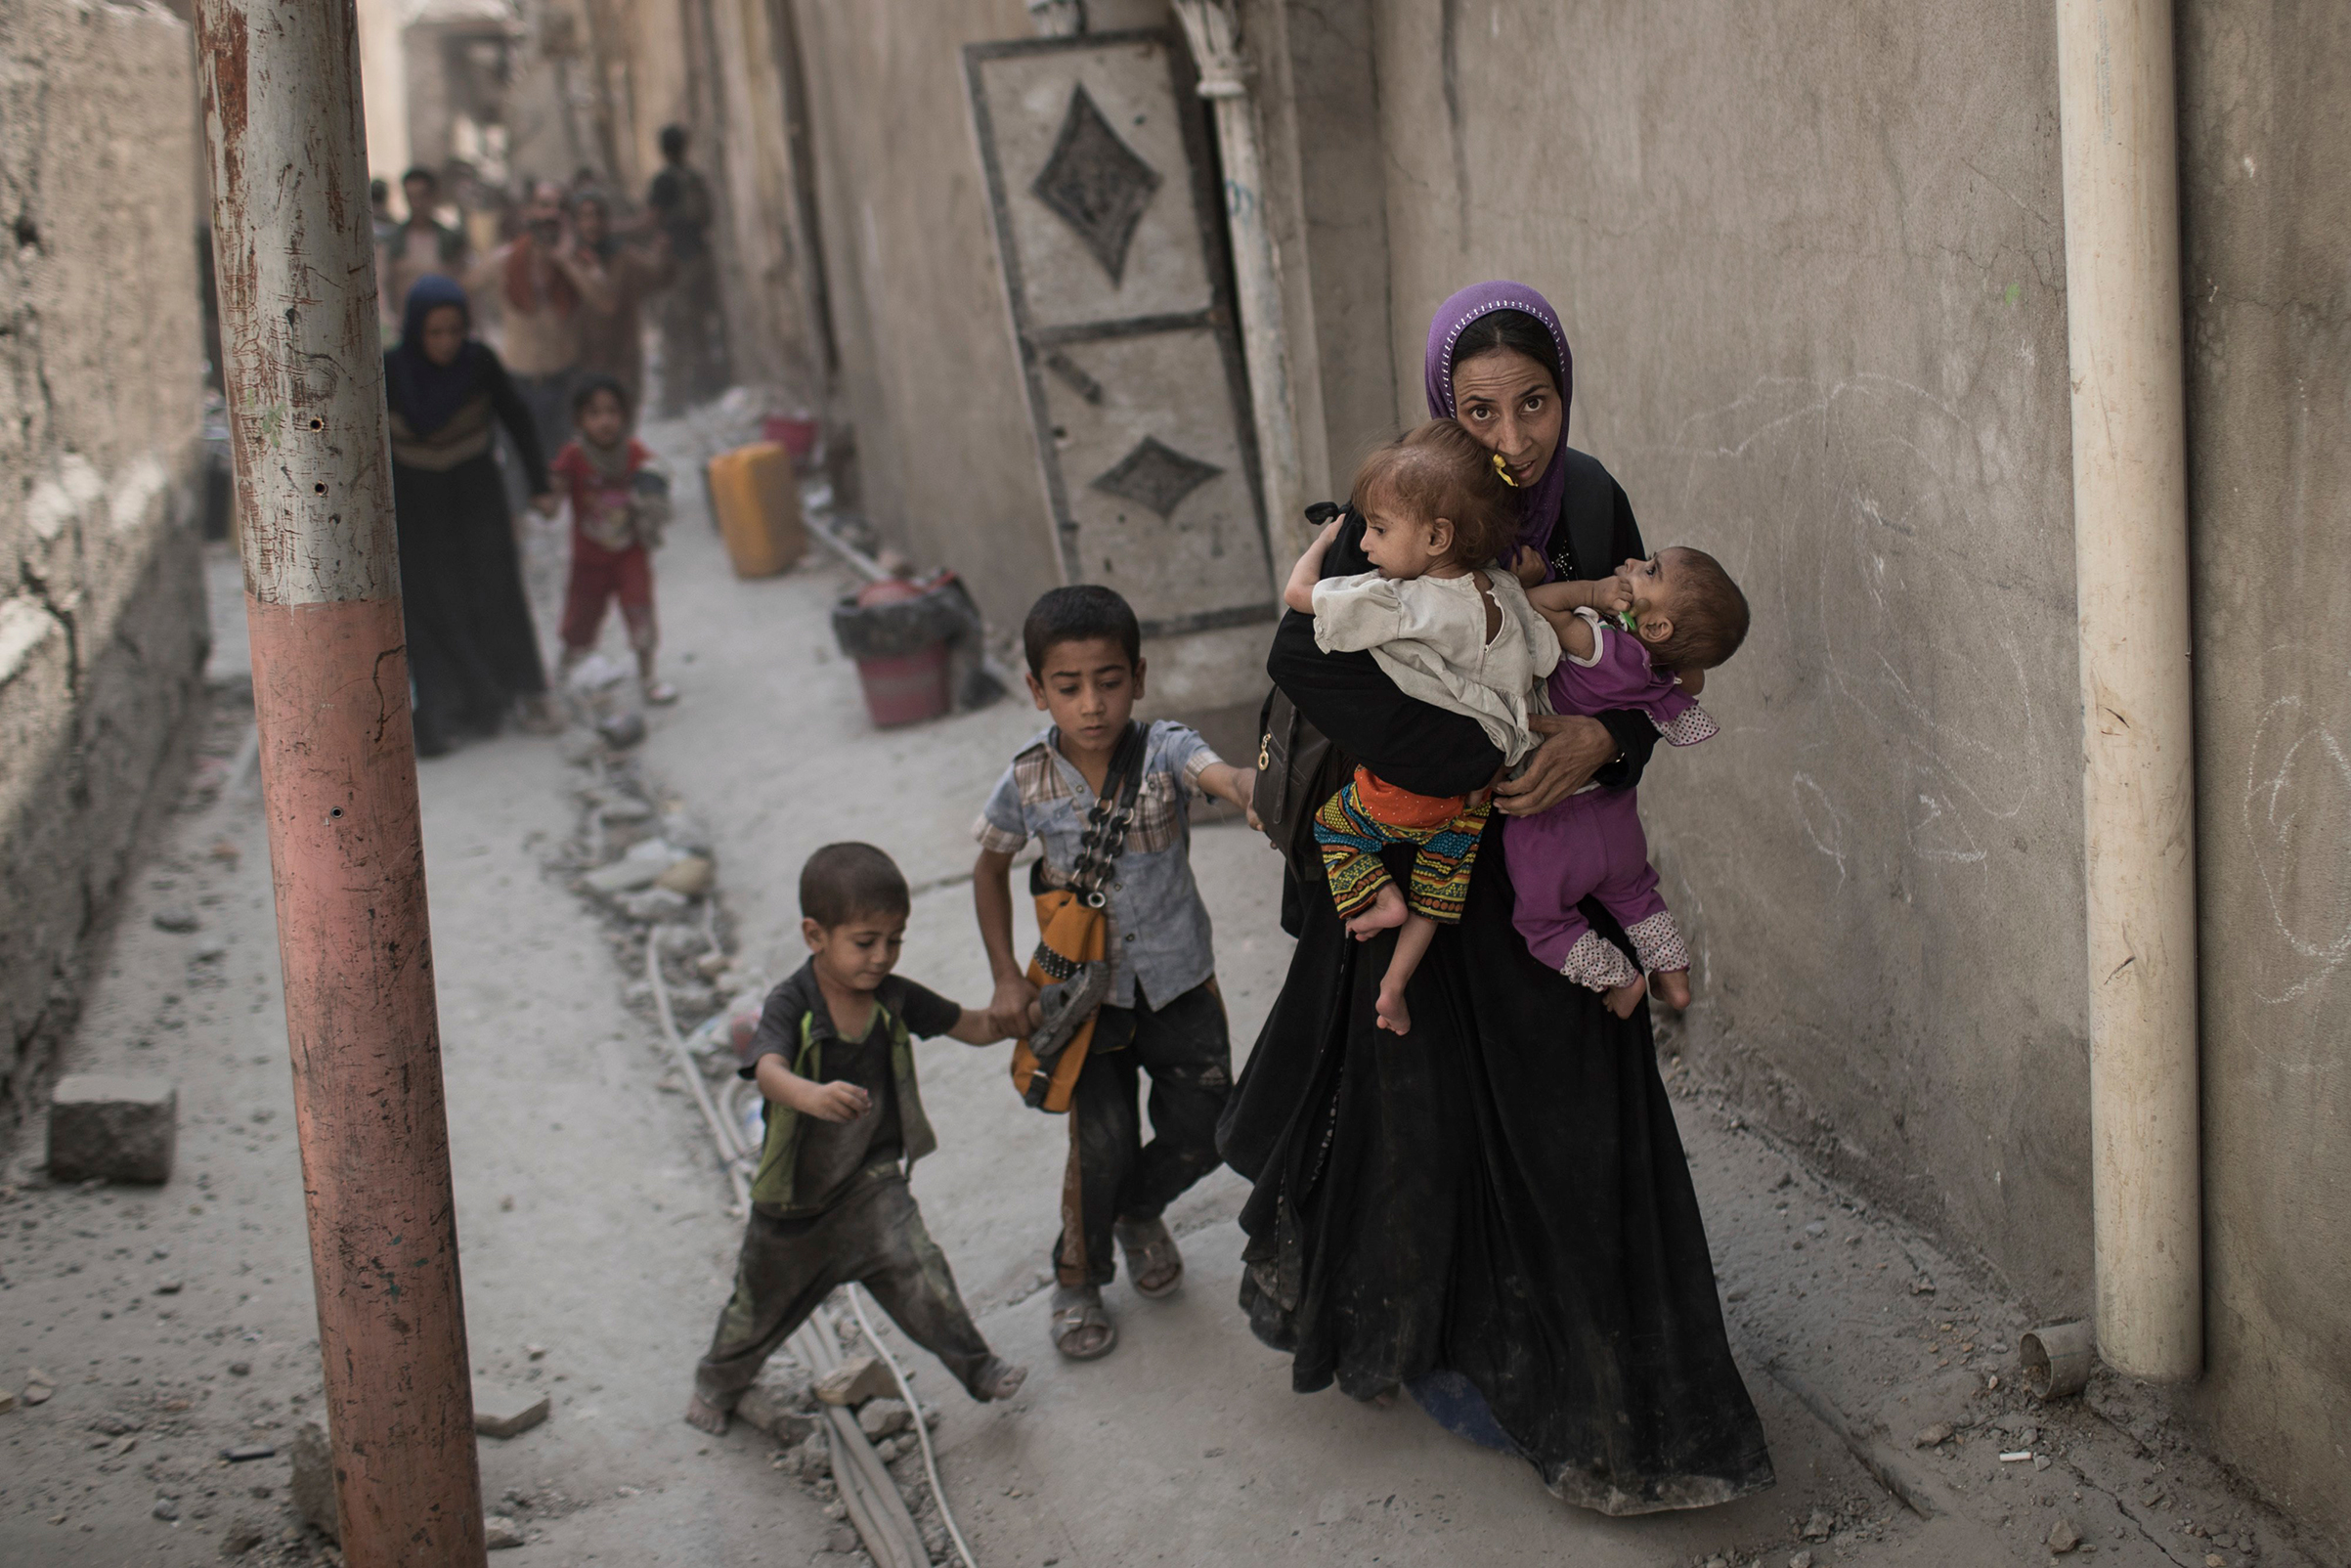 Iraqi civilians flee through an alley as Iraqi Special Forces continue their advance against Islamic State militants in the Old City of Mosul, Iraq, on July 3, 2017.